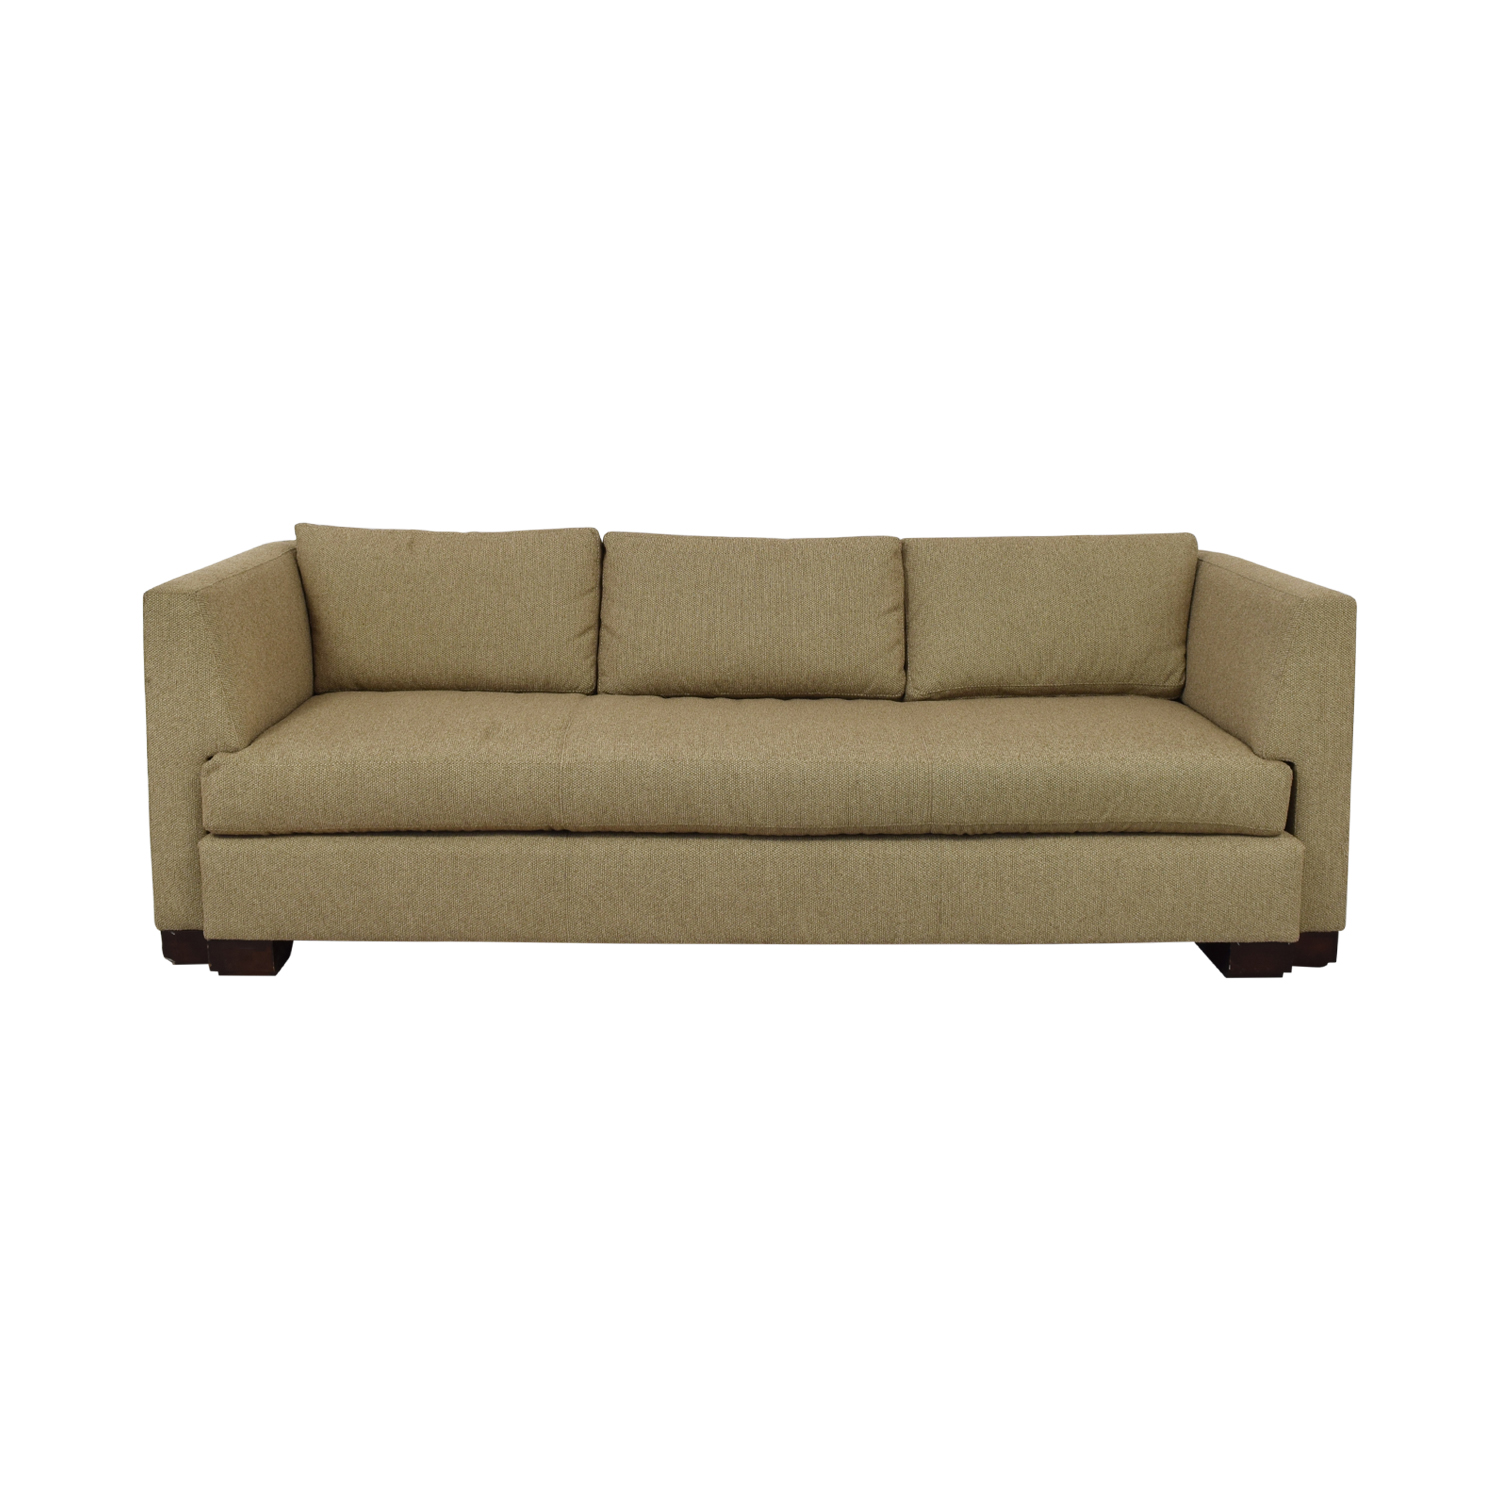 Baker Furniture Baker Furniture Hudson Sofa